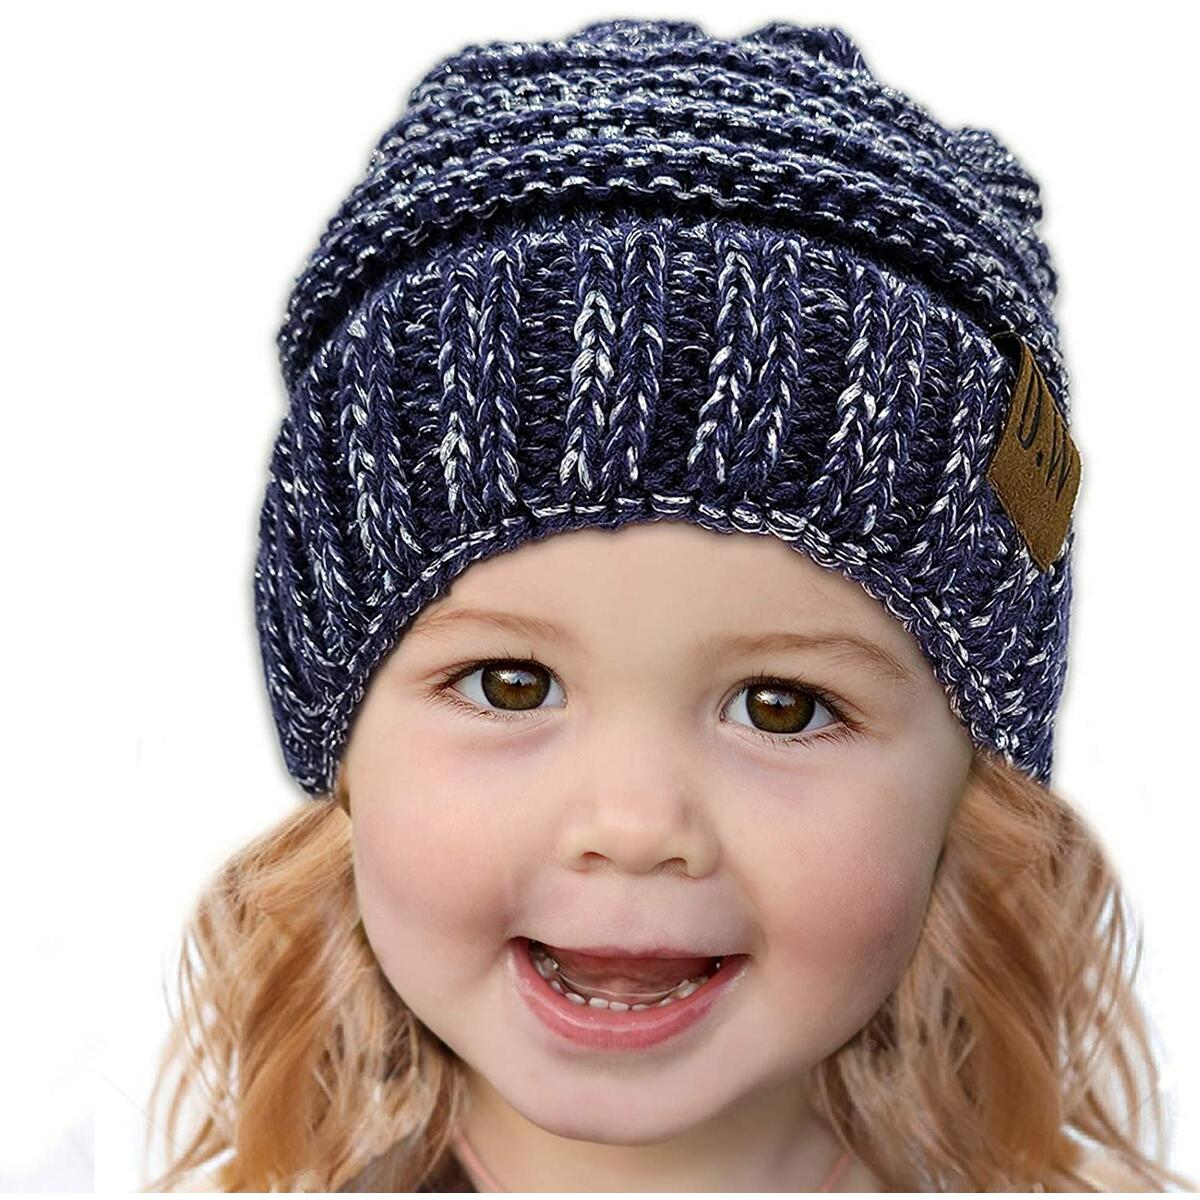 Debra Weitzner Kids Winter Beanie Hat Toddler Fleece Lined Knit Winter Cap for Boys and Girls color blue-silver